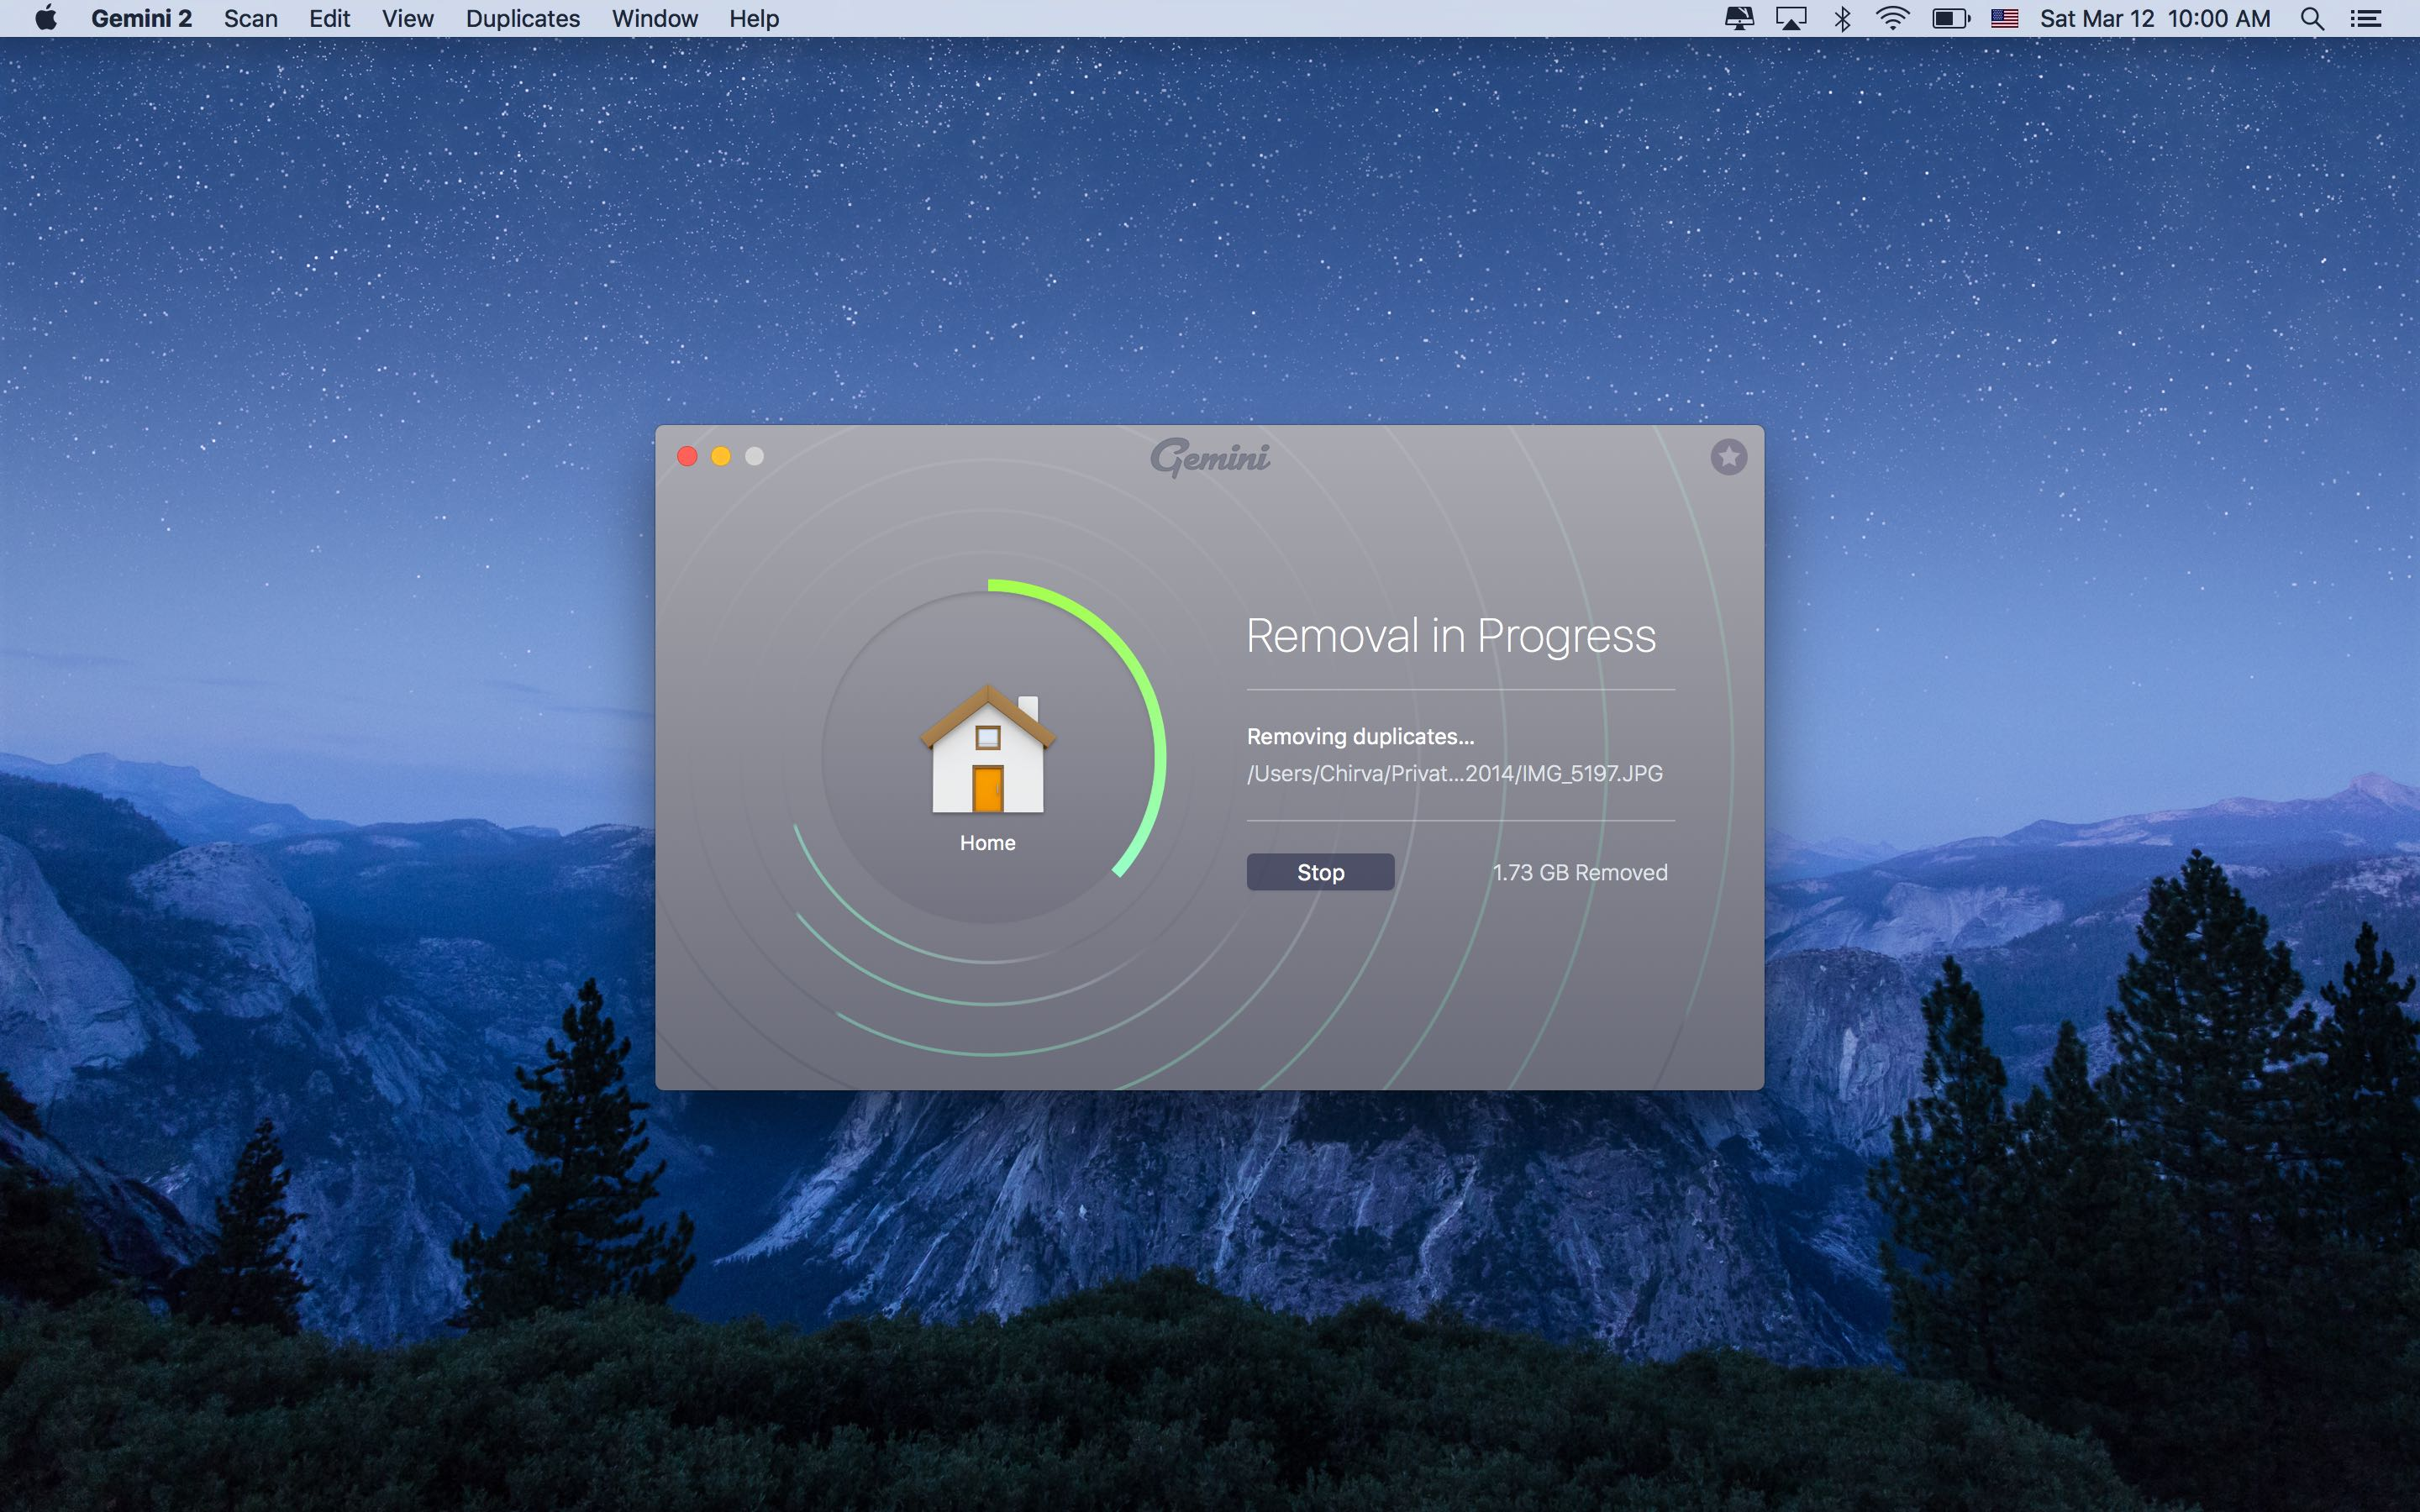 Gemini 2.0 for OS X removal progress Mac screenshot 001